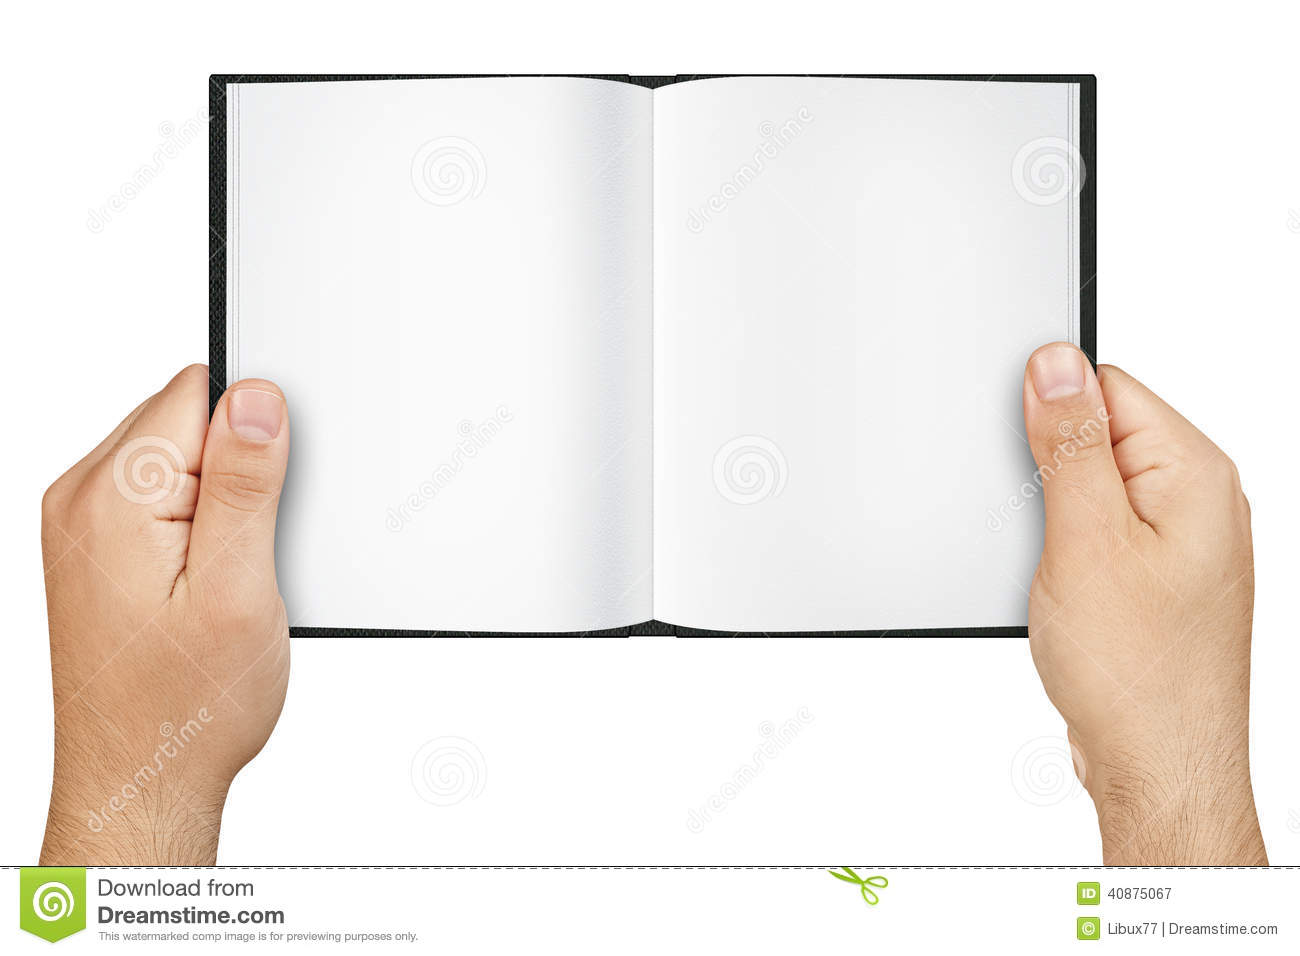 how to draw a hand holding a book